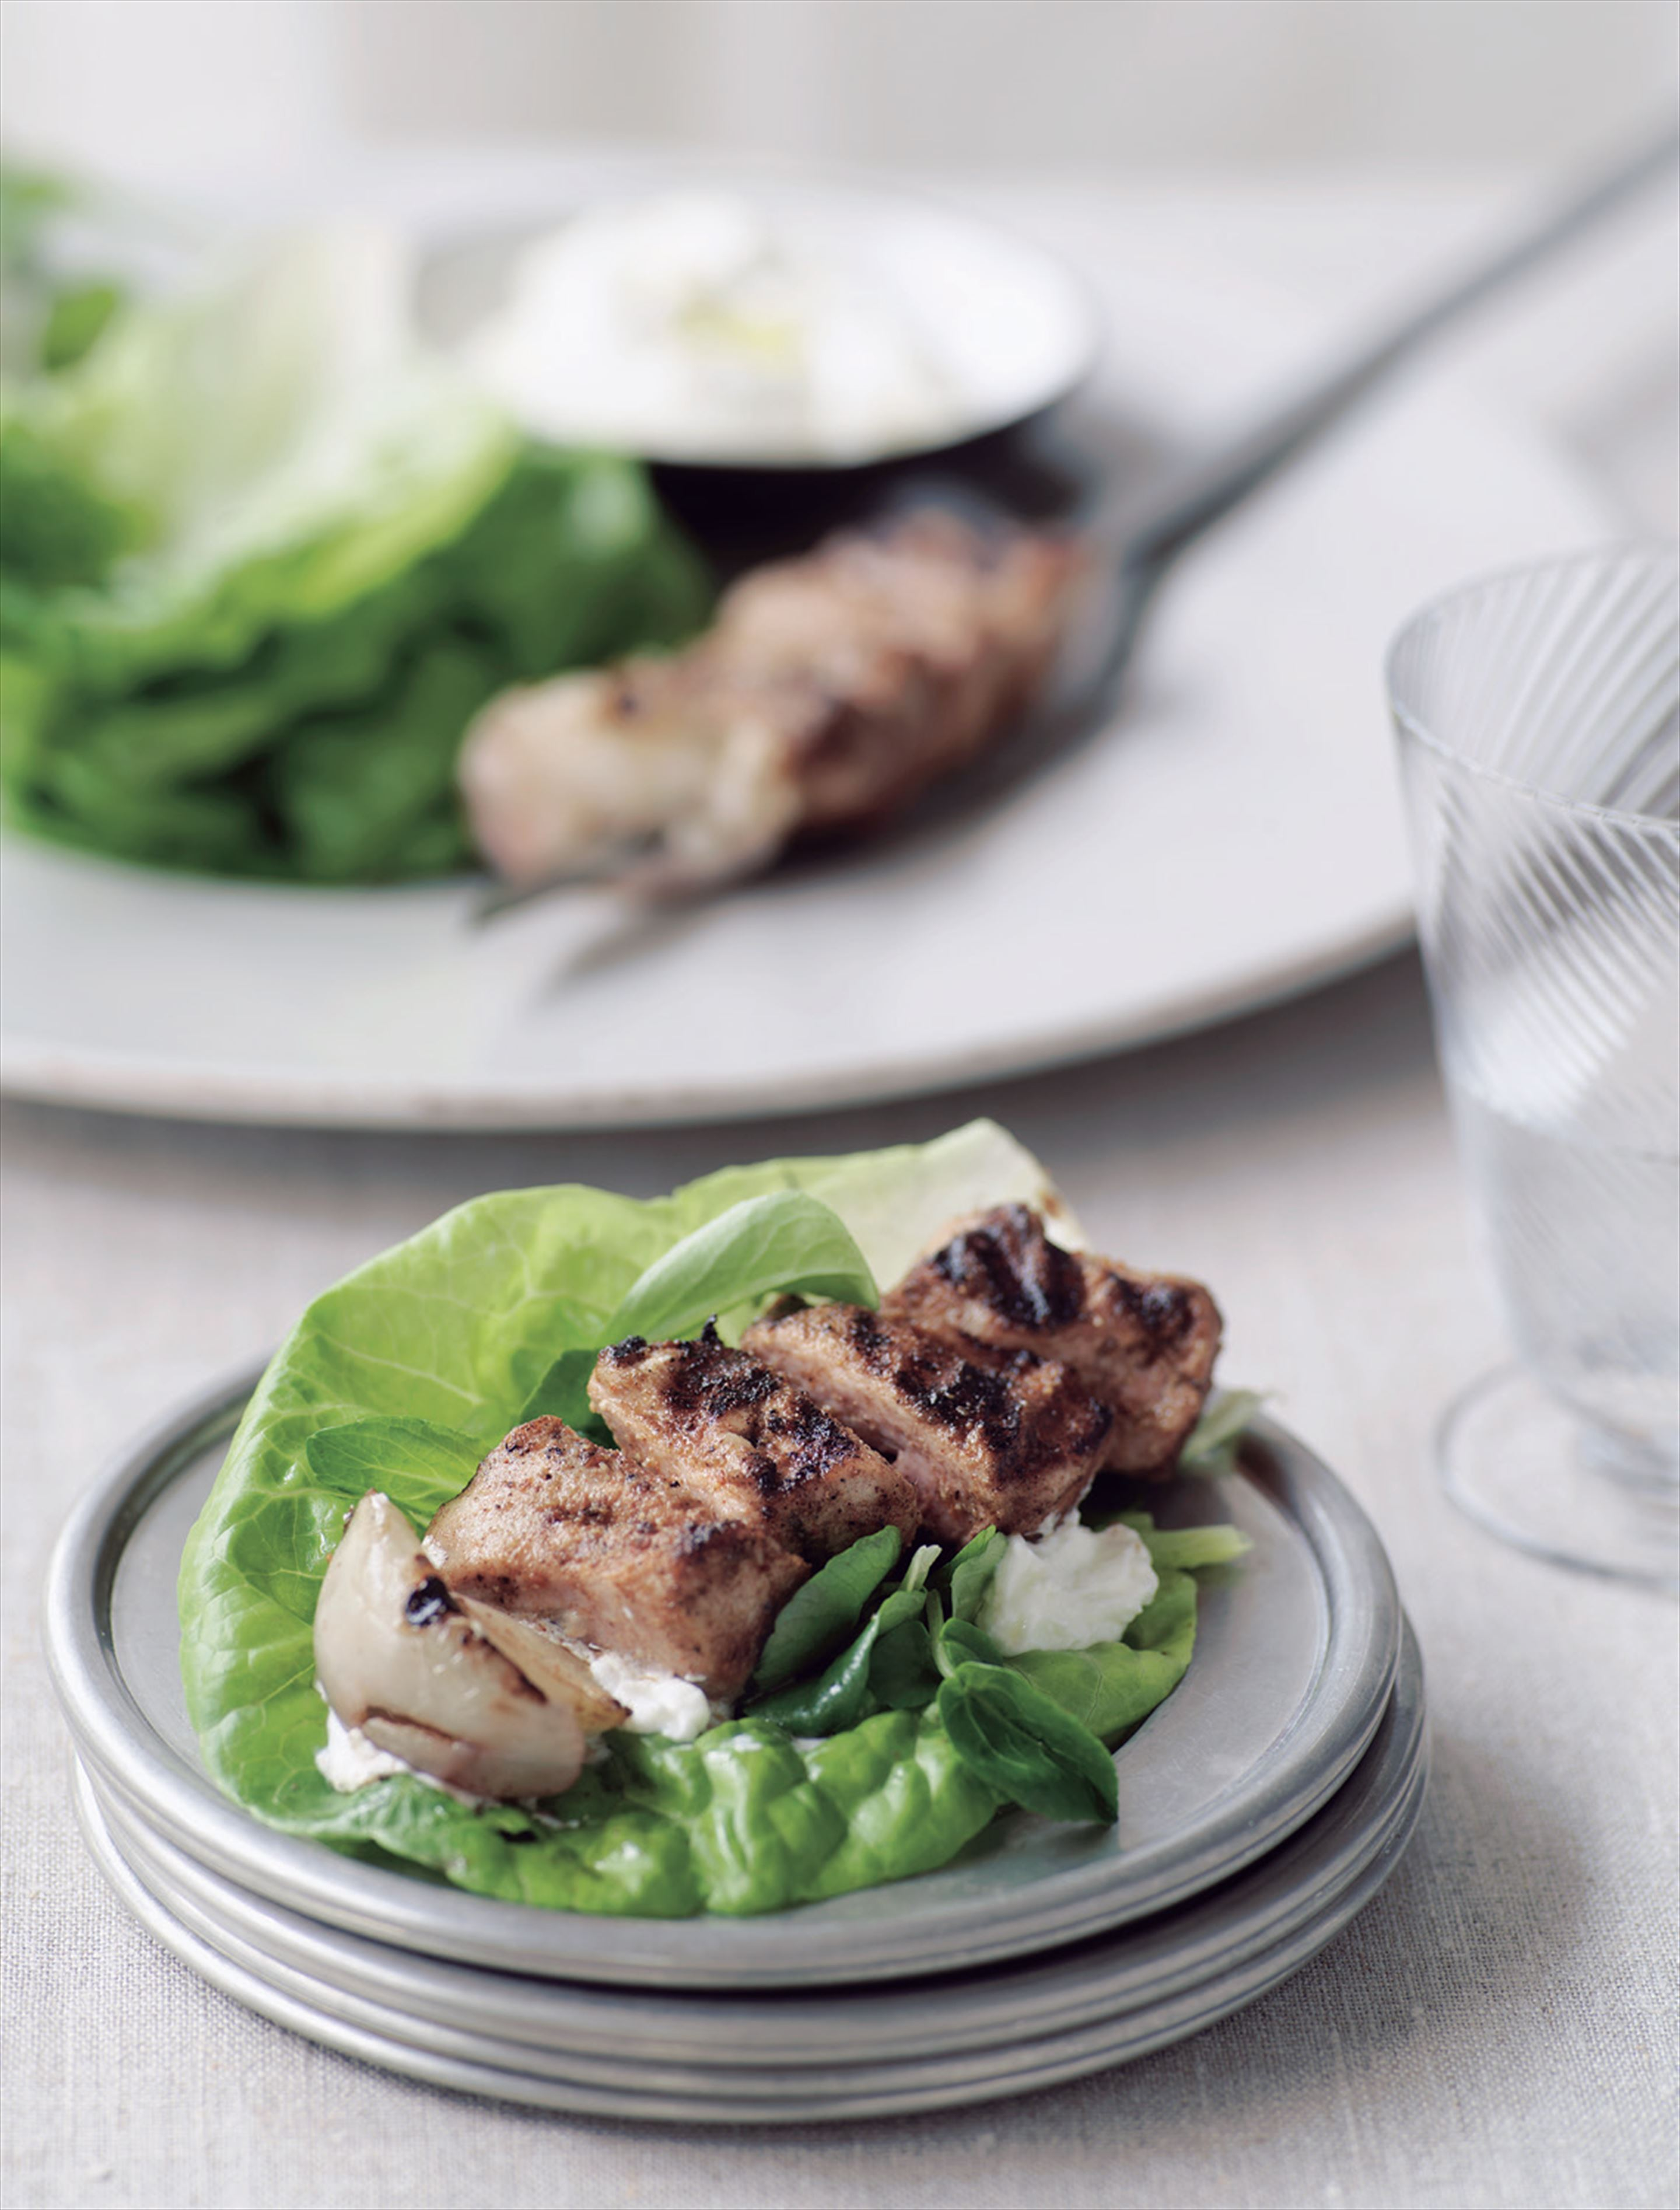 Rabbit kebabs in lettuce leaves